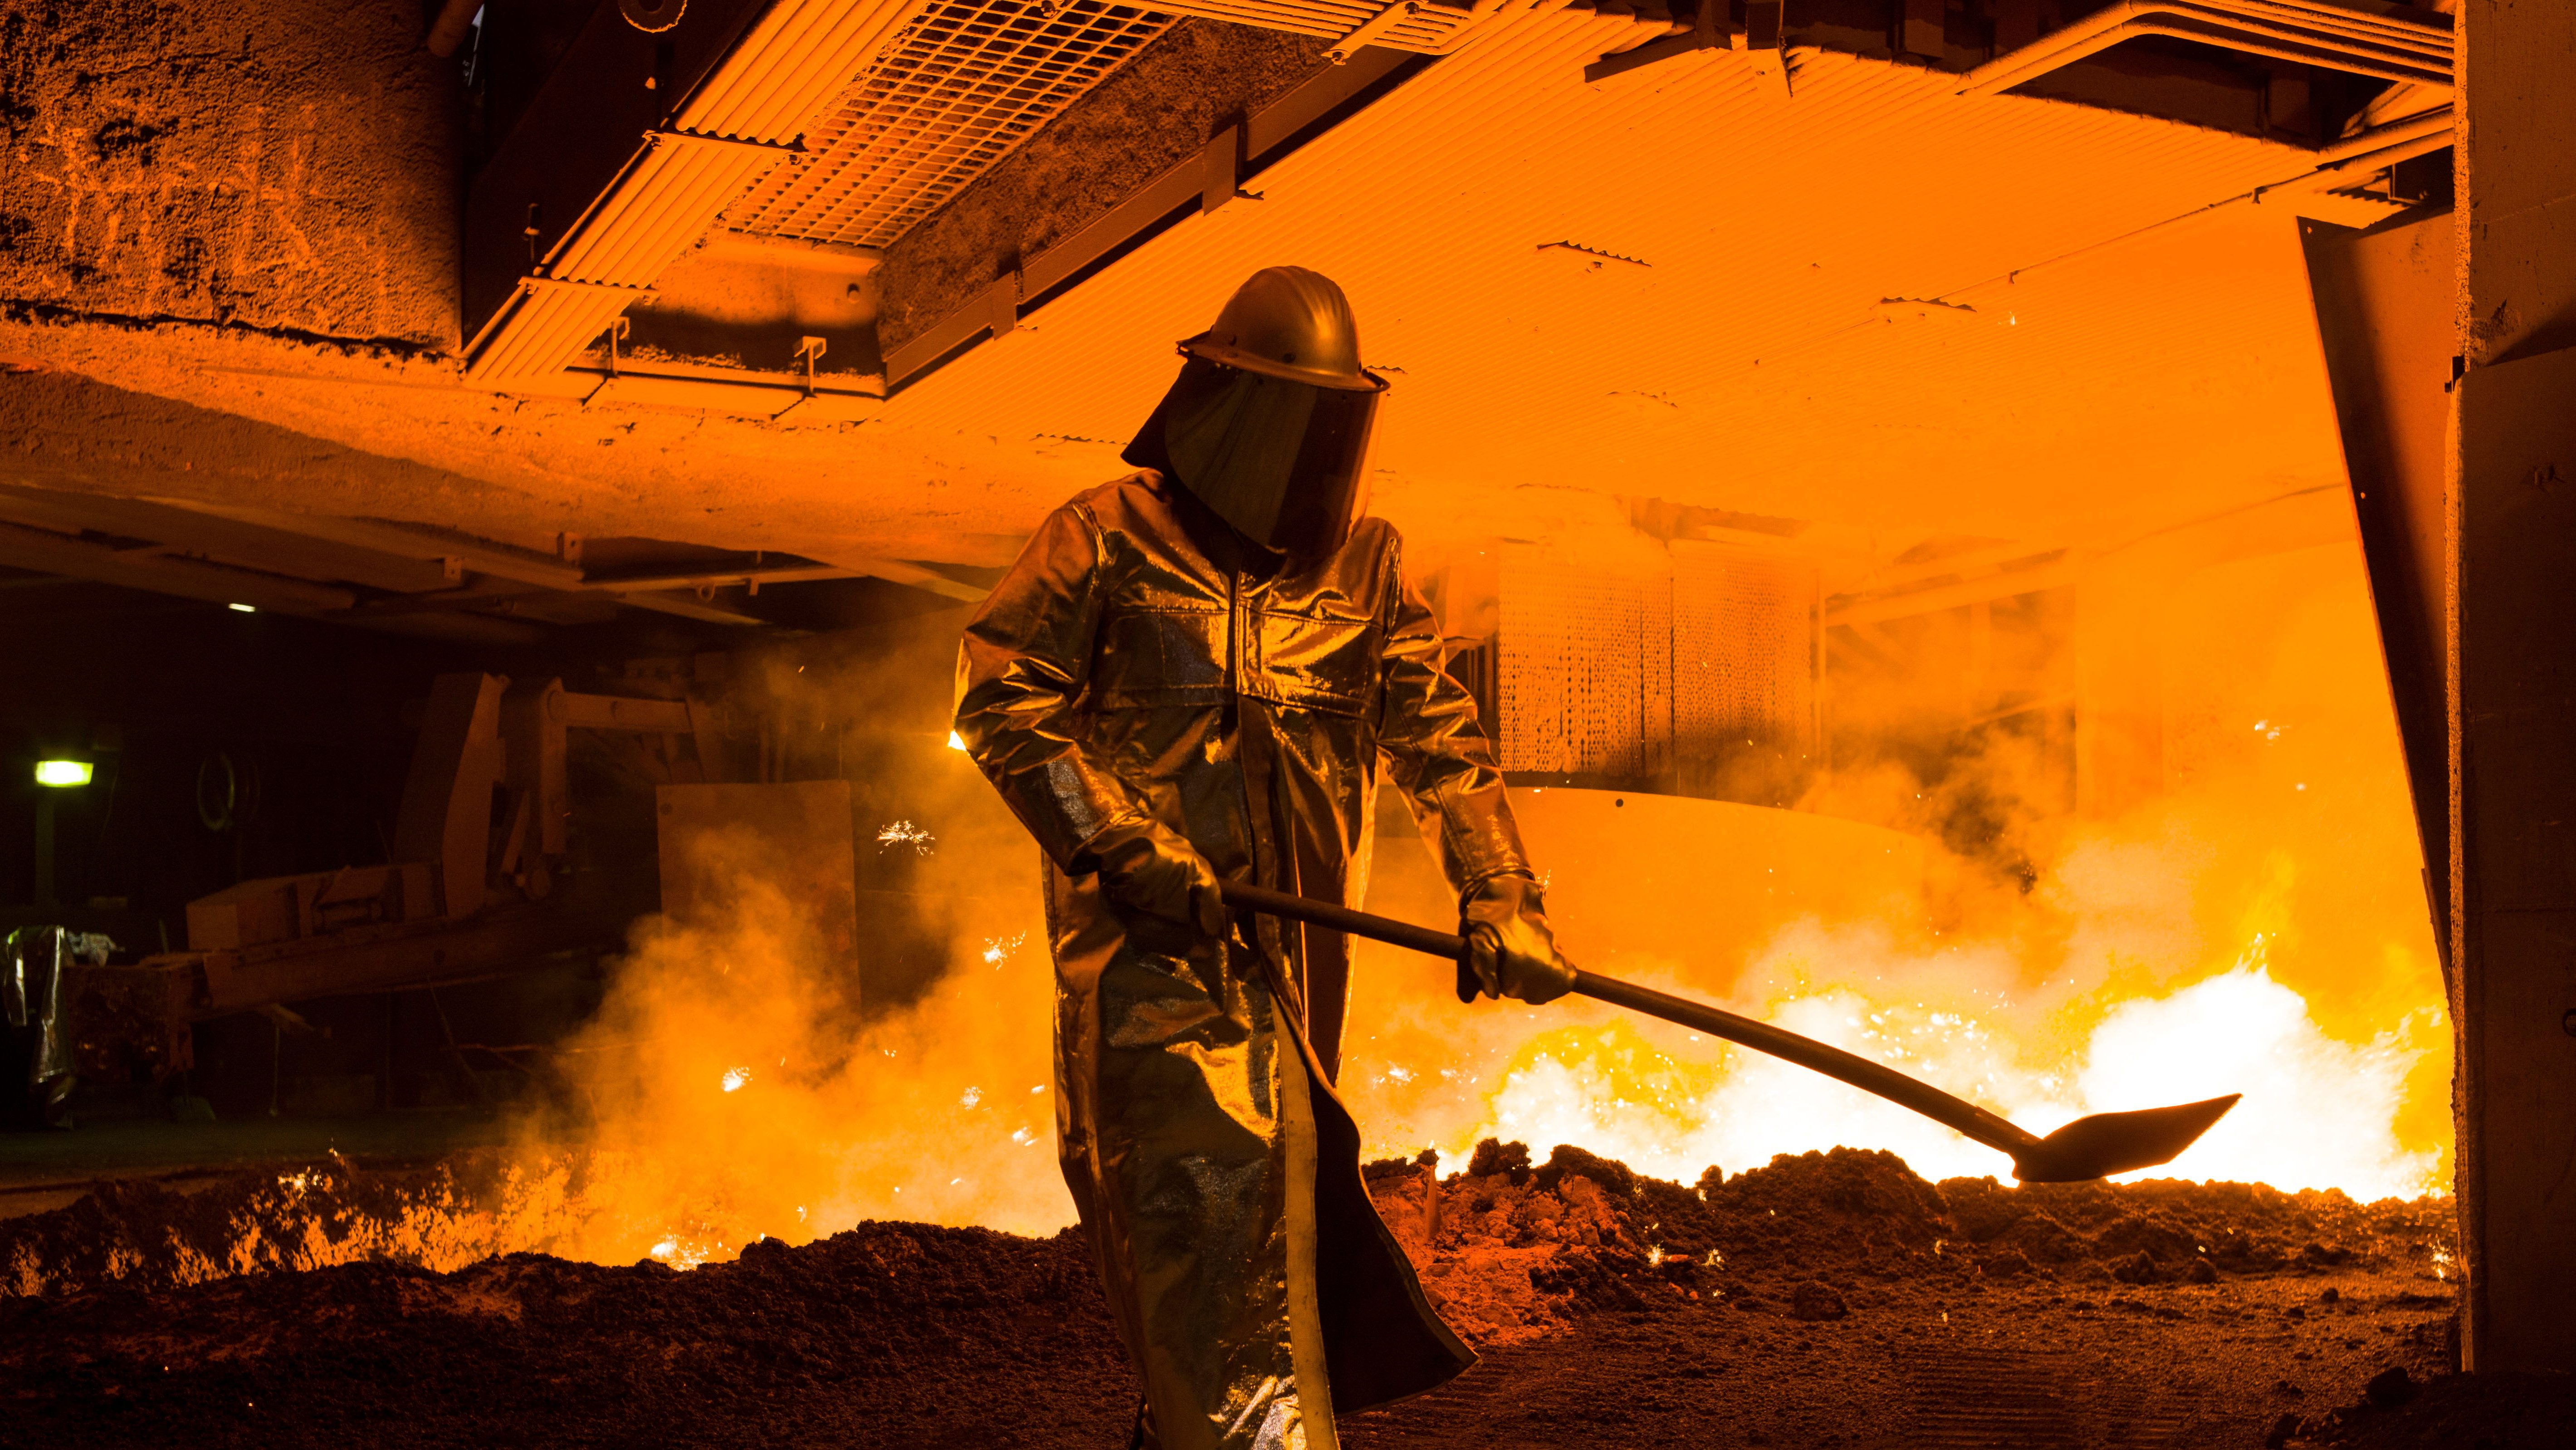 Germany Steel Tariffs: An employee in protective clothing works at the furnace  at the steel producer